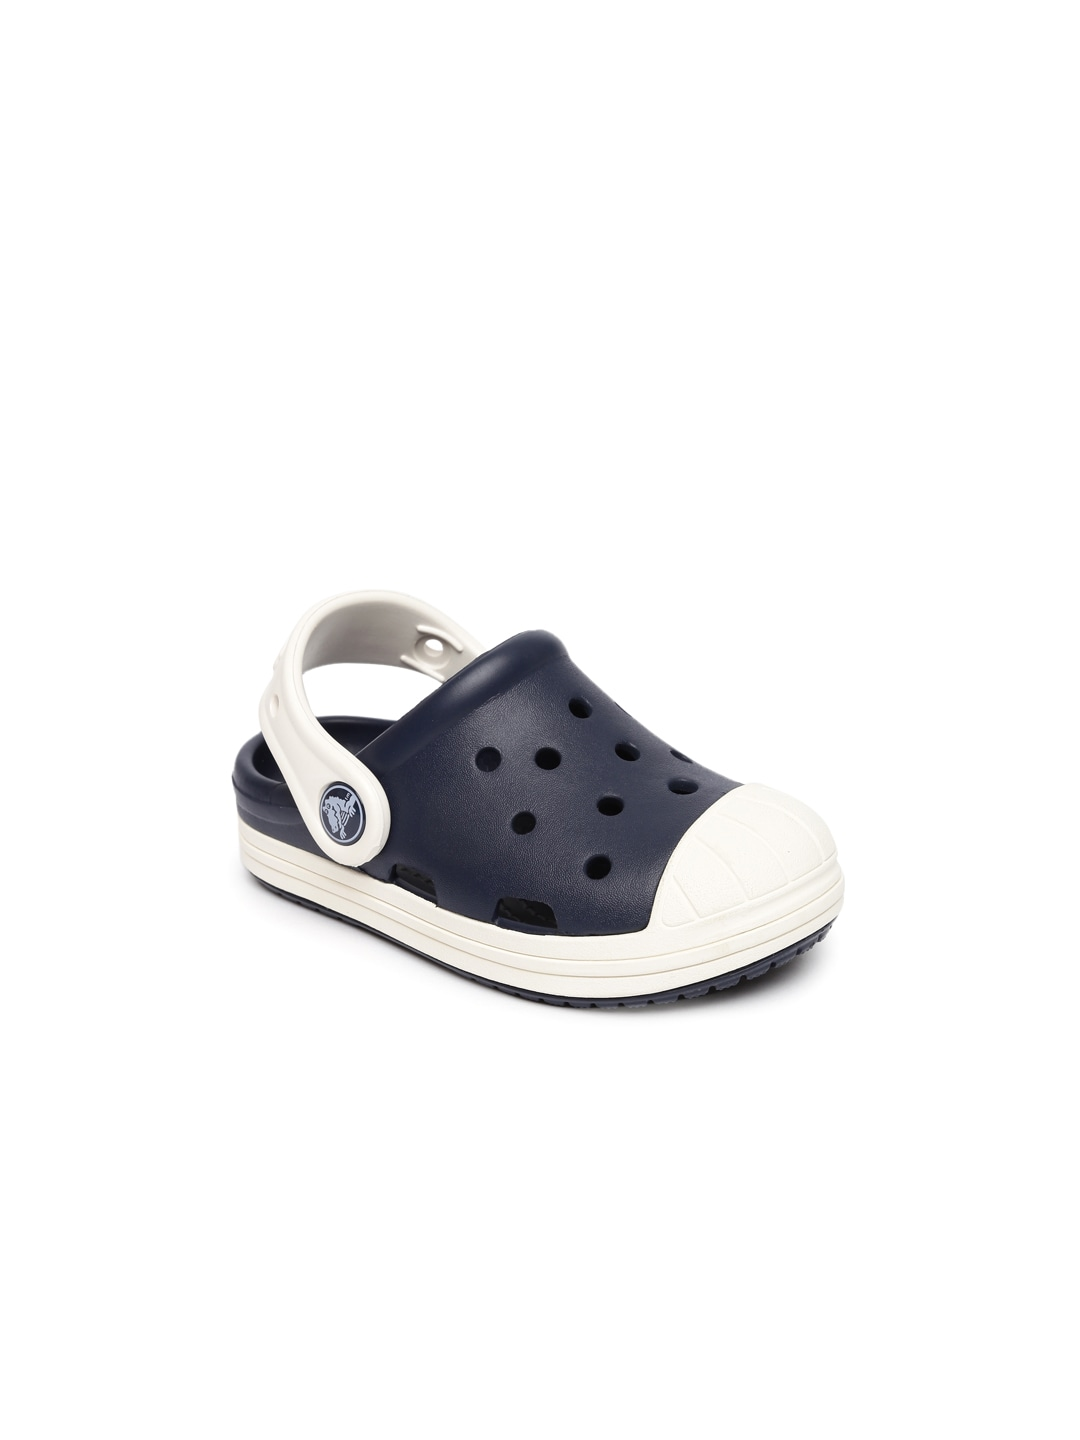 Crocs Kids Navy & White Colourblocked Clogs